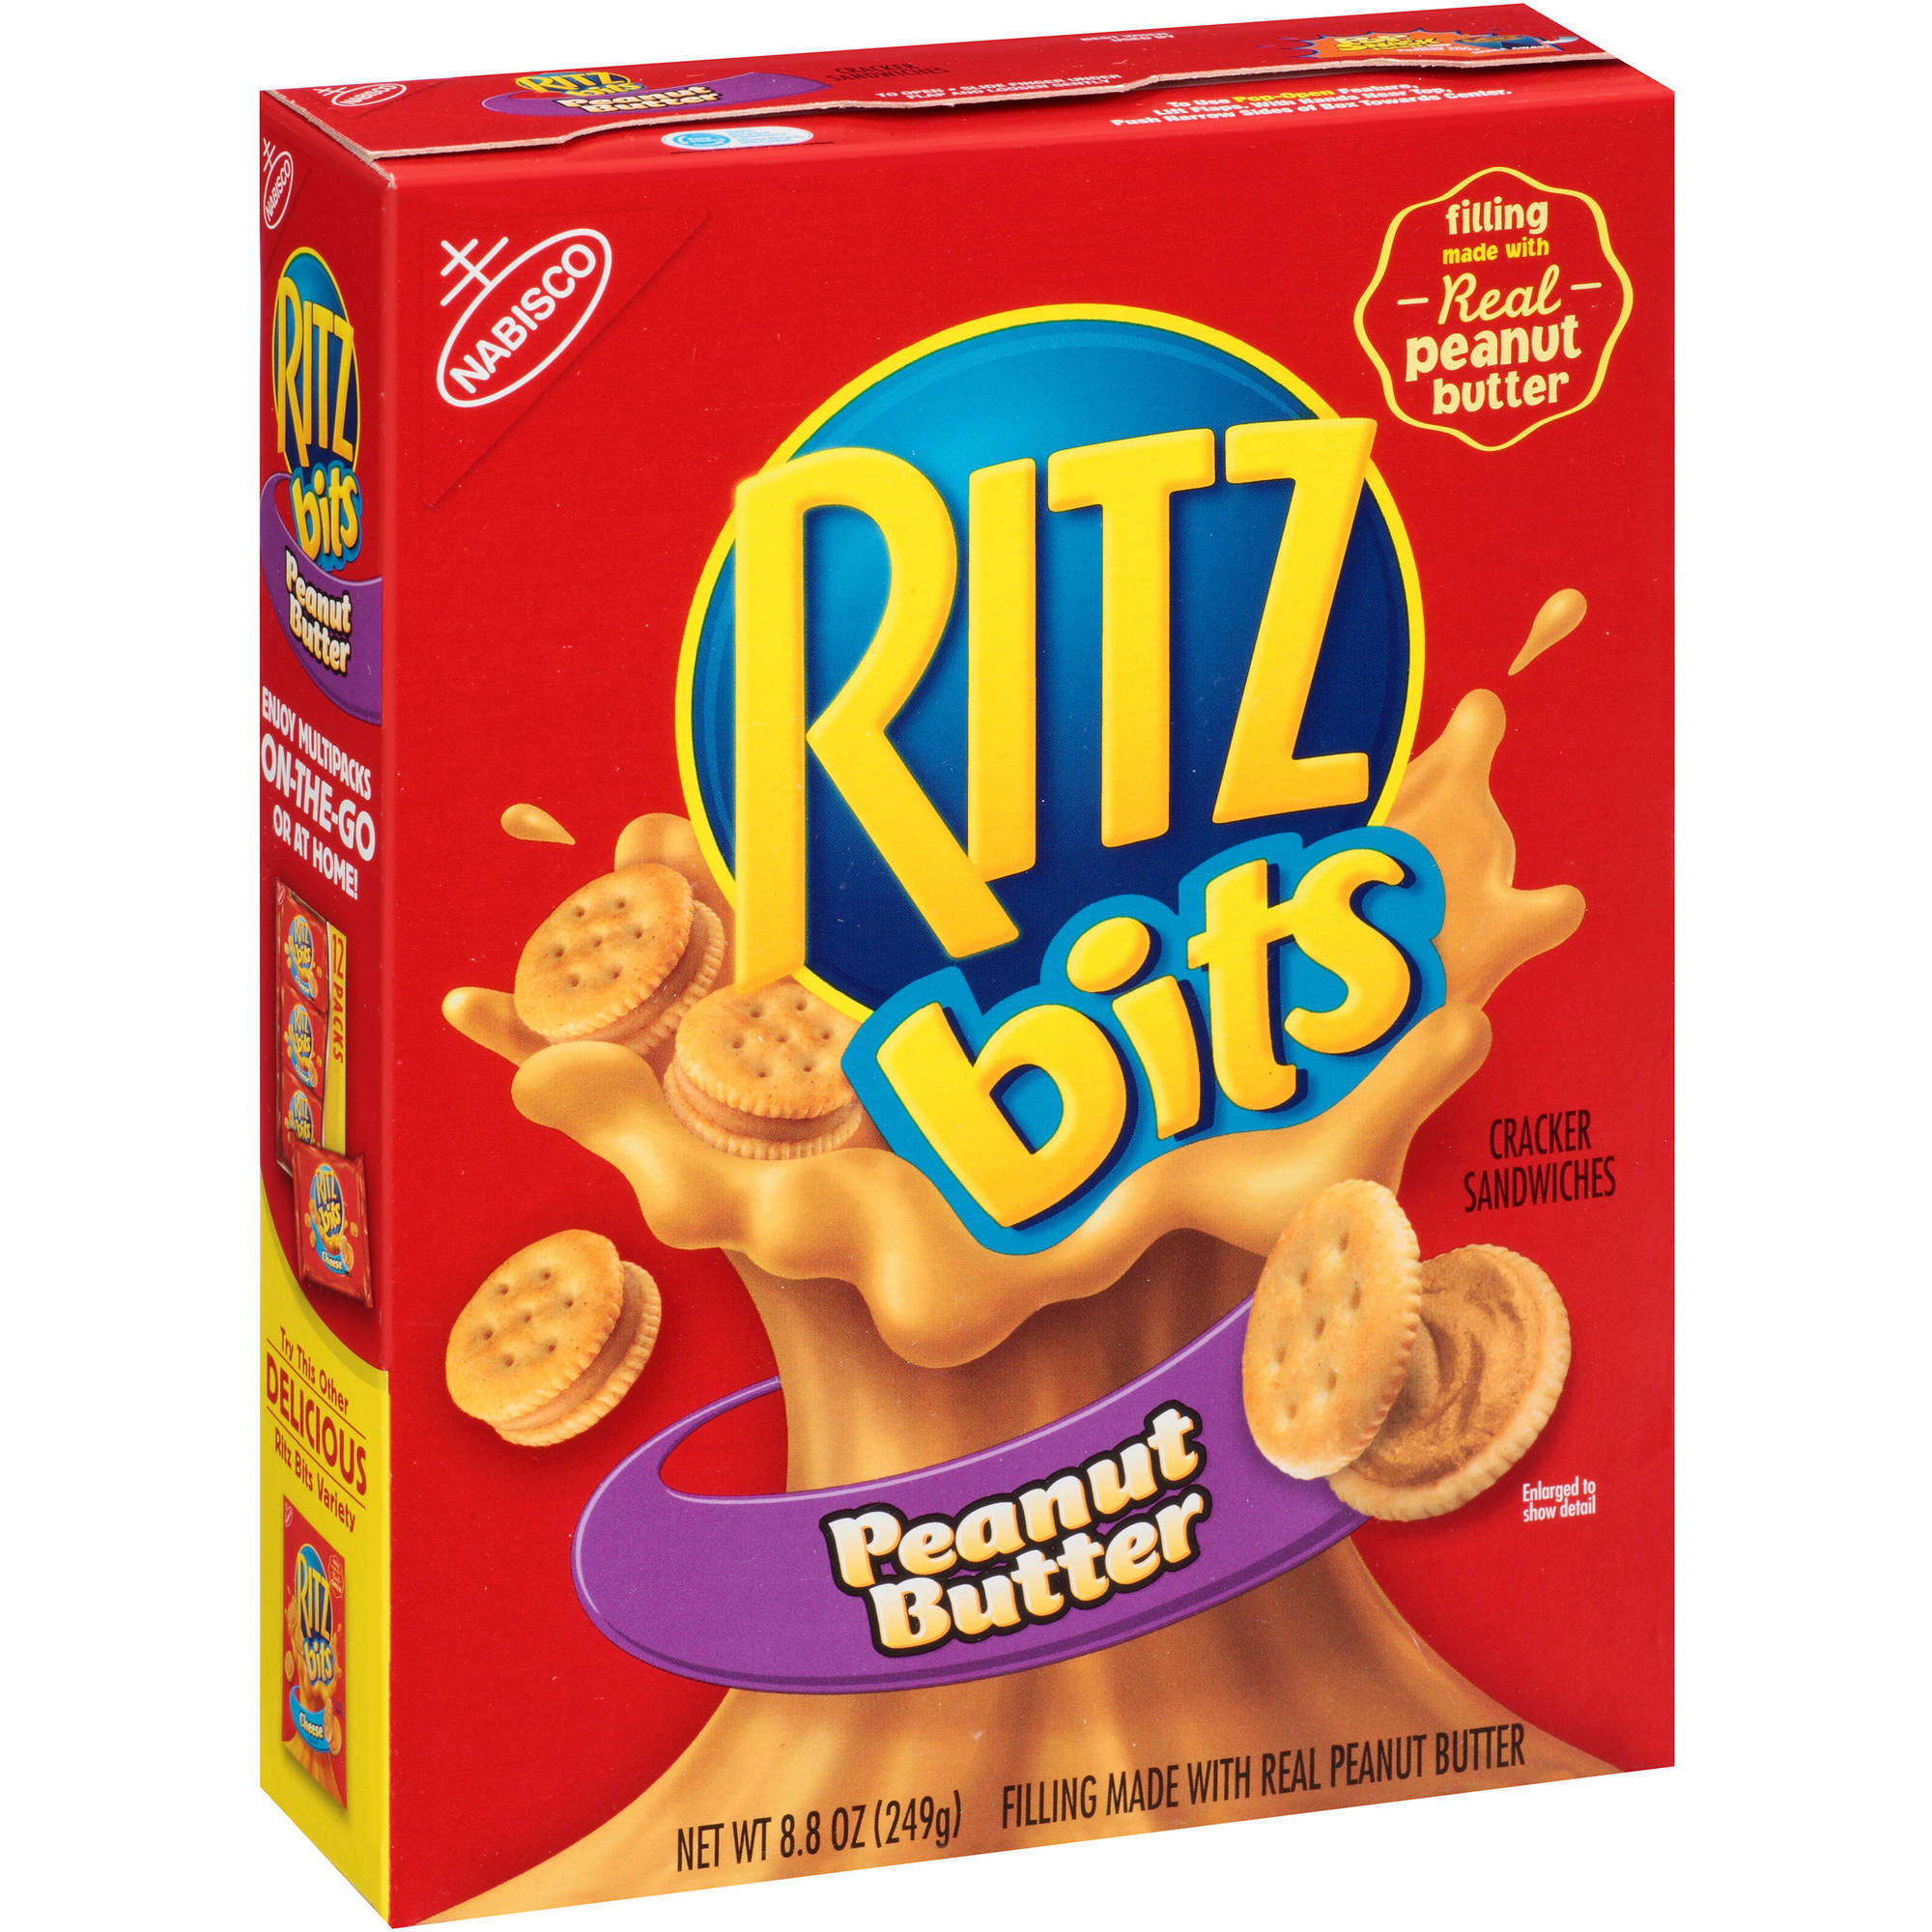 Ritz Bits Peanut Butter Cracker Sandwiches, 8.8 oz